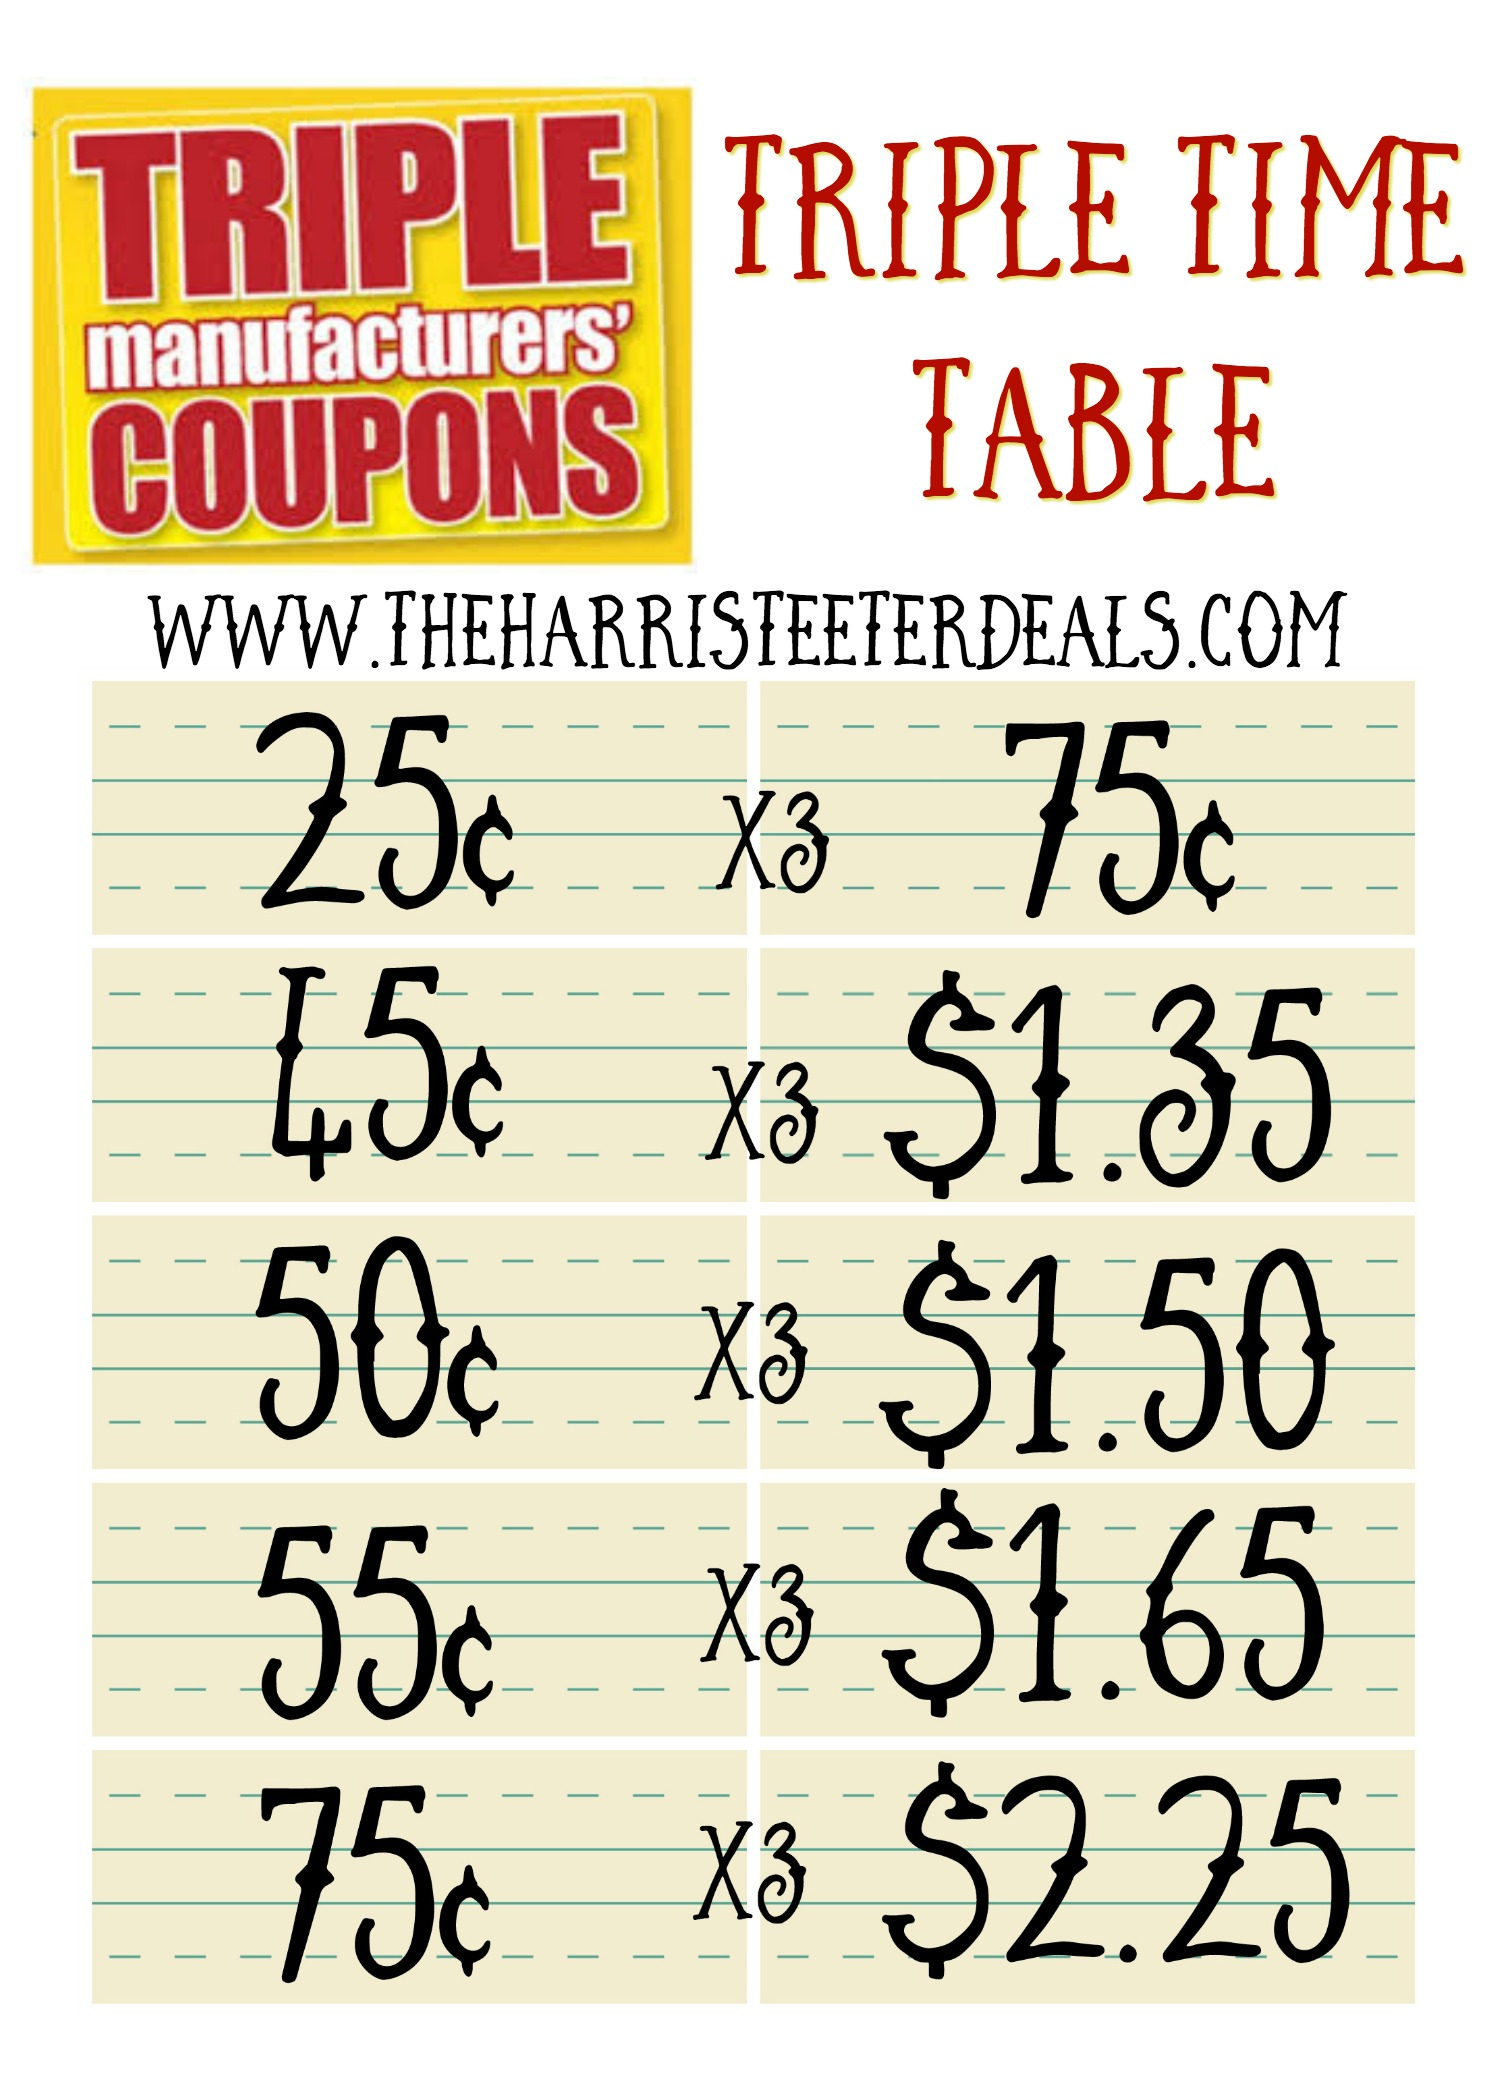 Printable Coupons Archives - Page 802 of 1296 - The Harris Teeter Deals